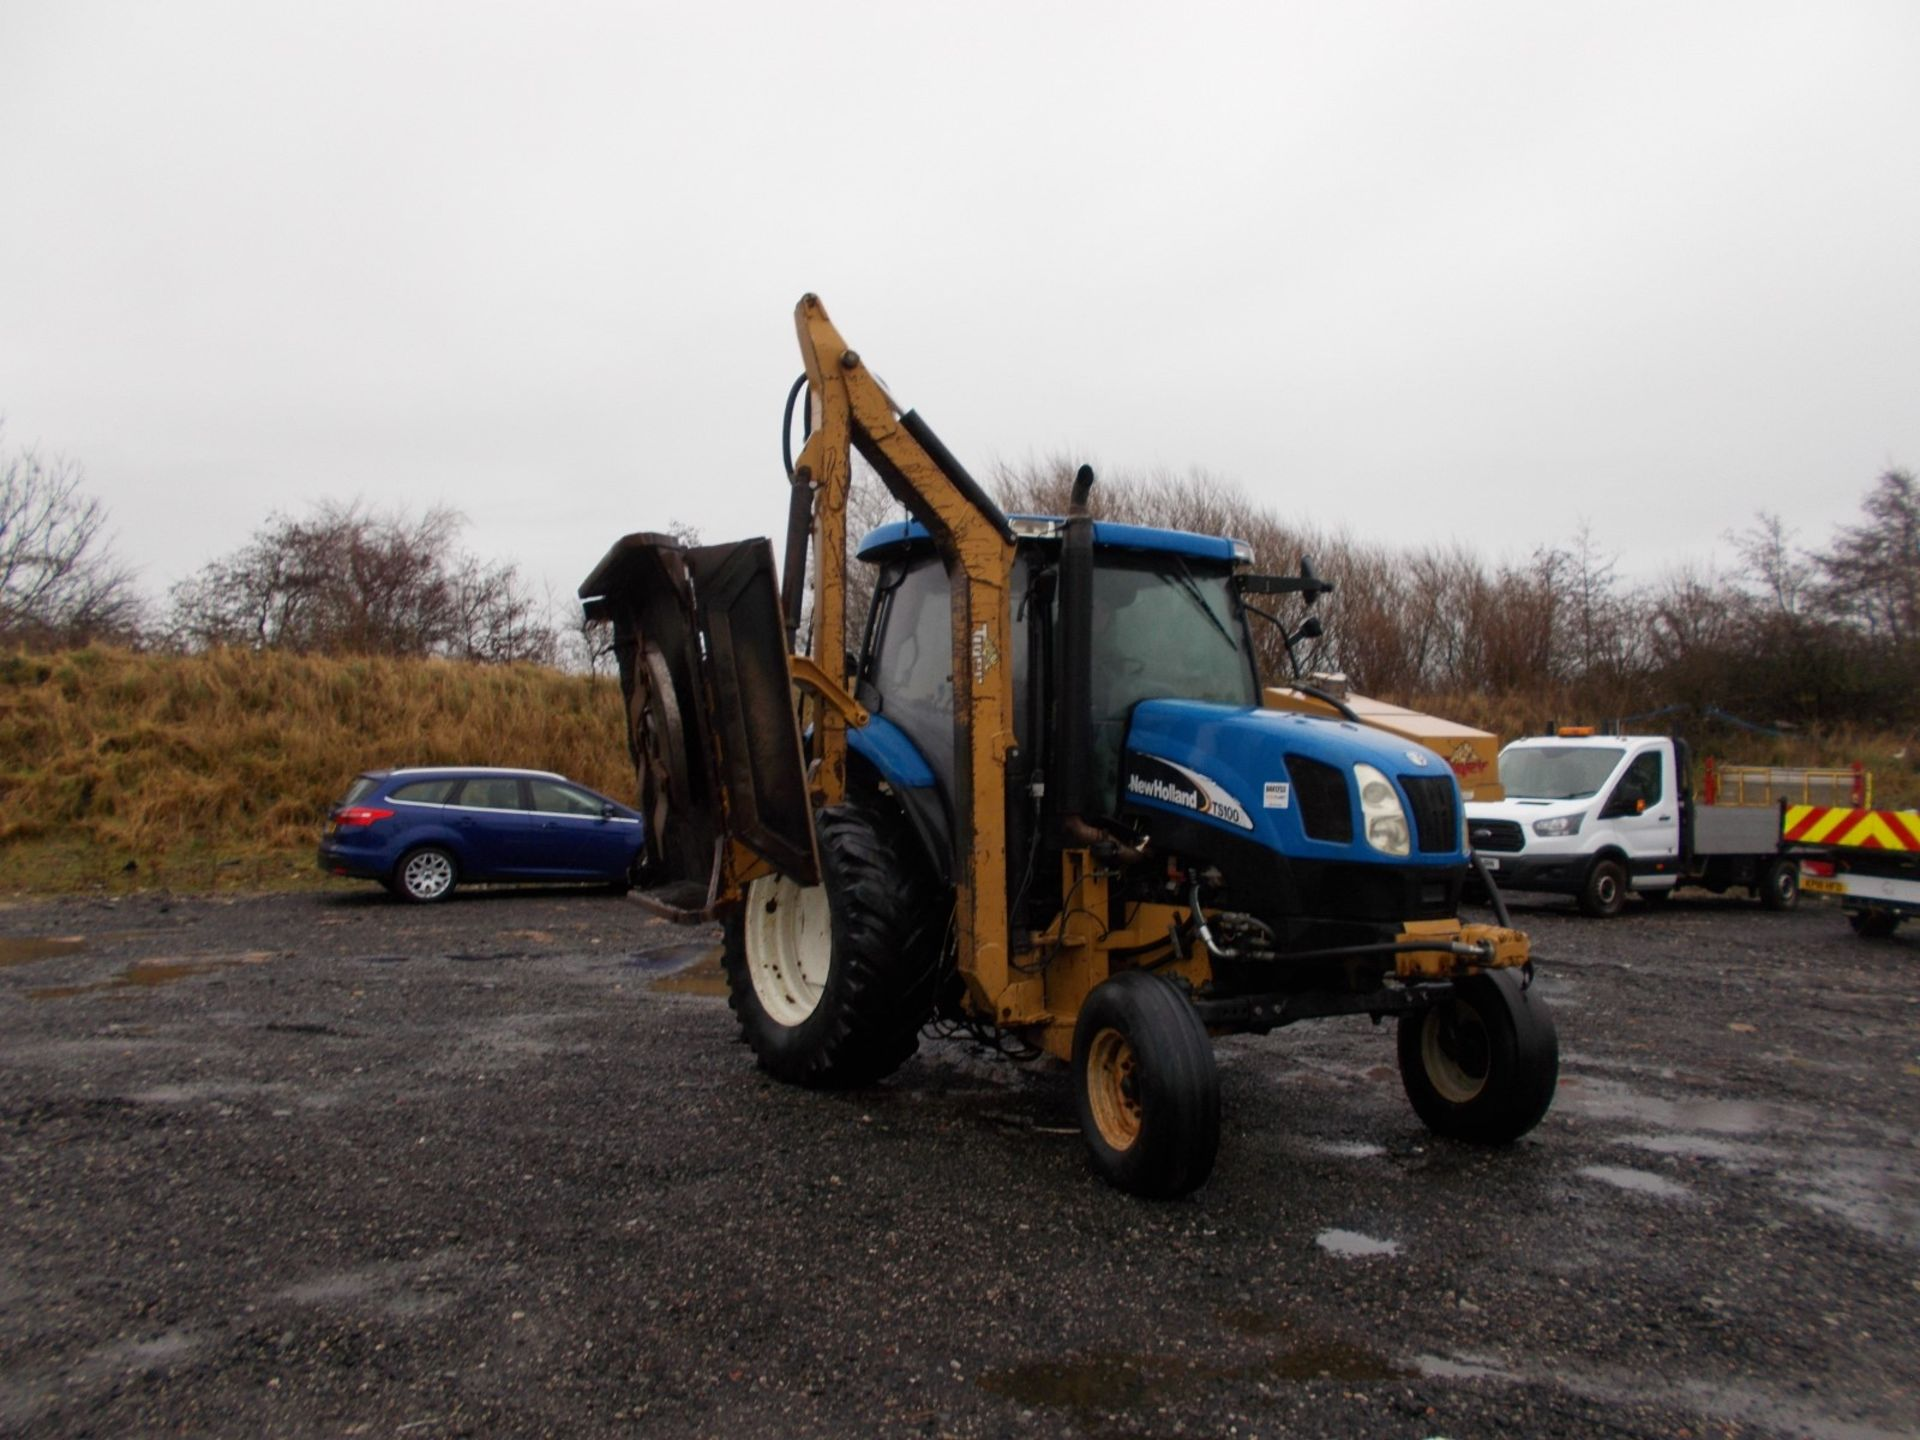 2003 NEW HOLLAND TS100A TRACTOR WITH MOWER ATTACHMENT, 4.5 LITRE 100HP TURBO DIESEL *PLUS VAT* - Image 14 of 24